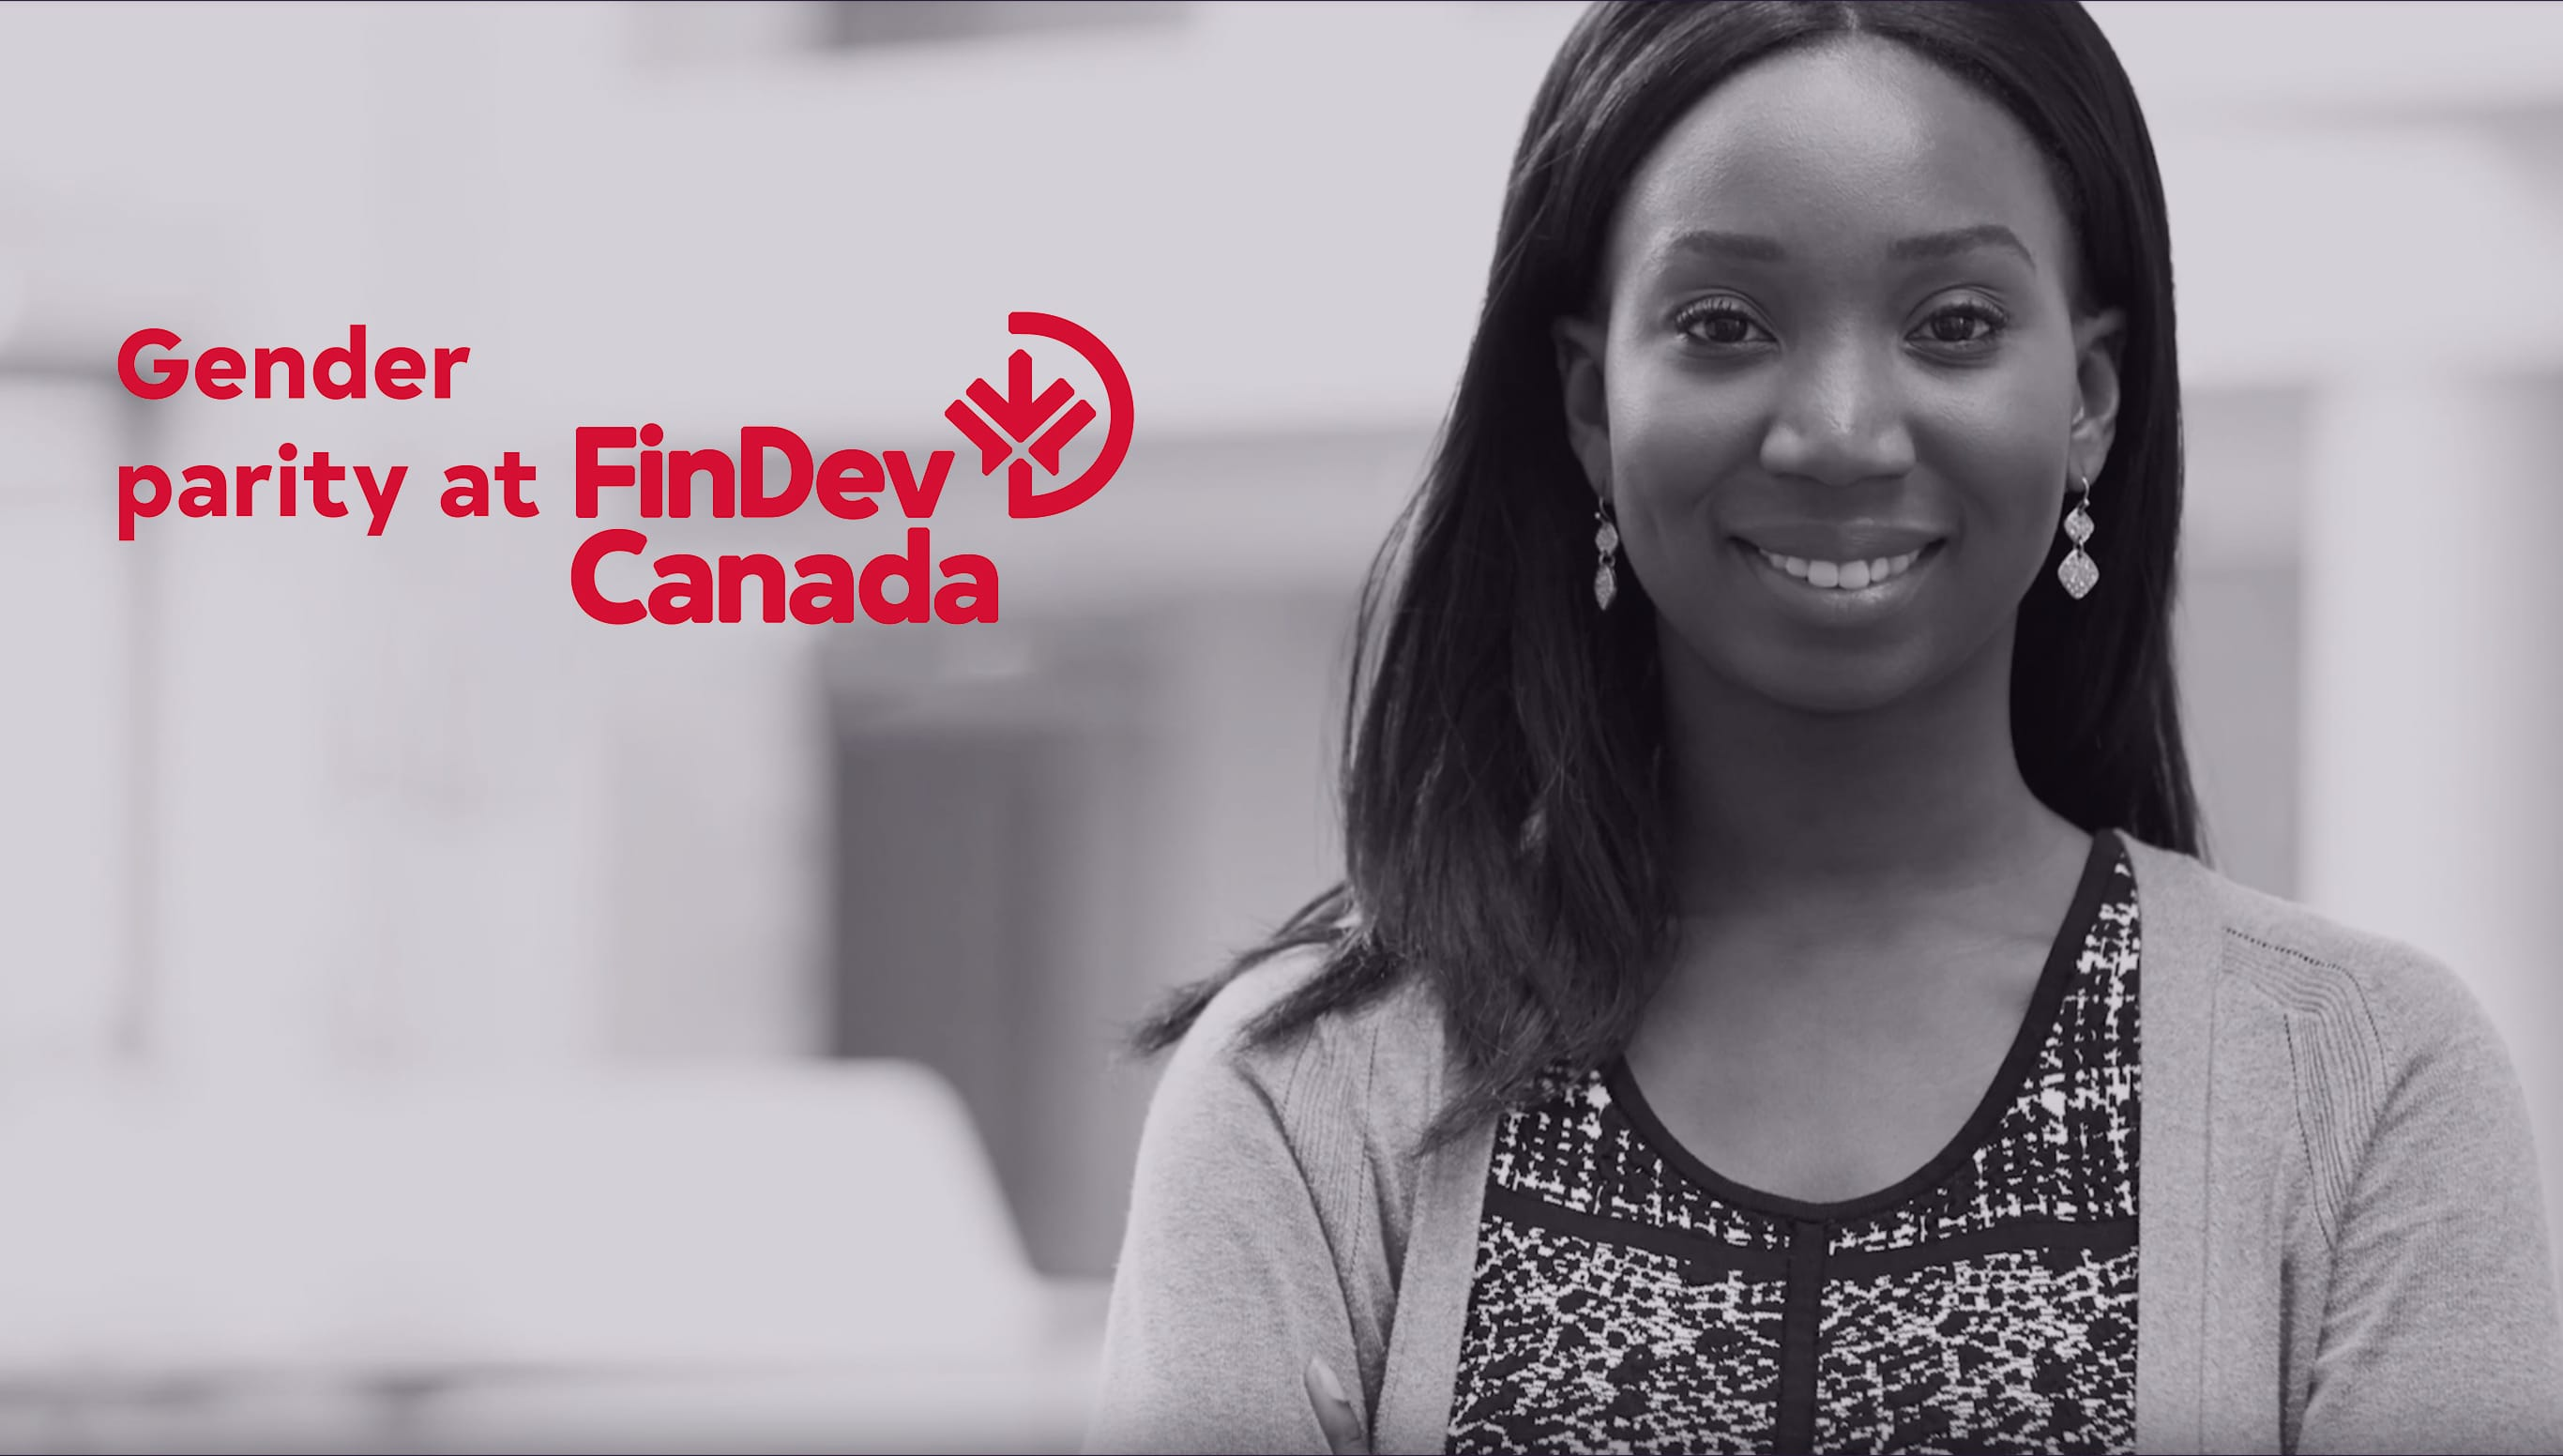 Young FinDev employee smiles in the workplace